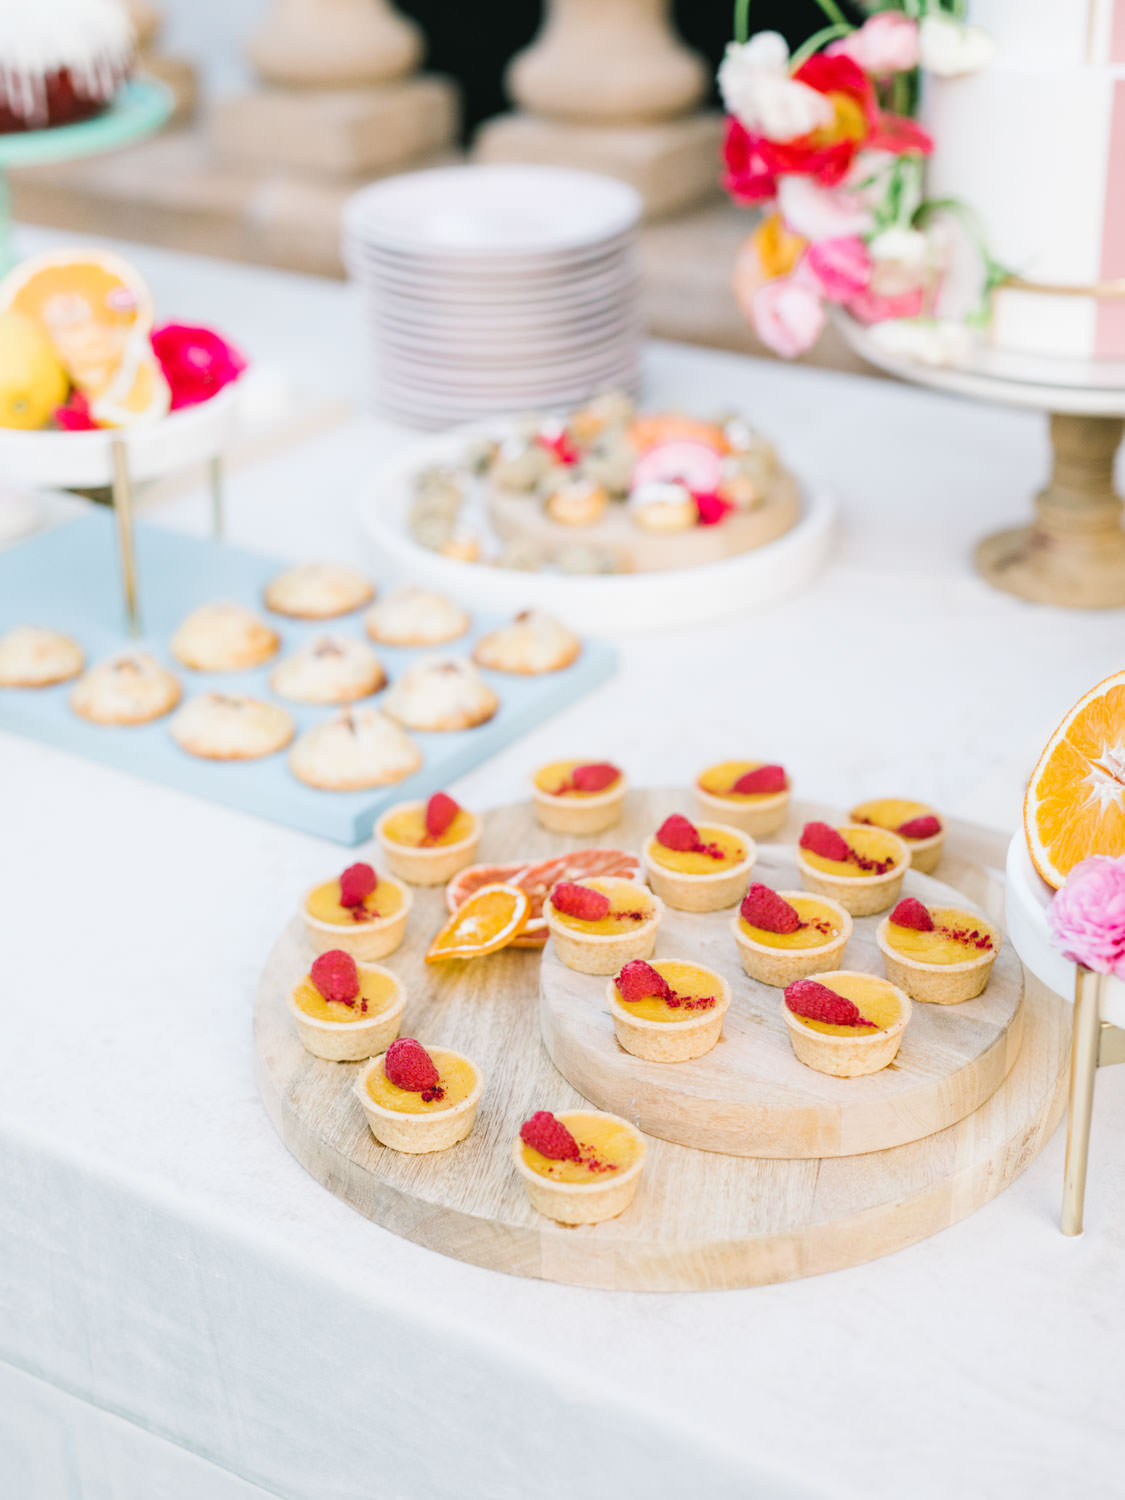 Mini Passion fruit tarts on a wooden serving board on top of velvet linen